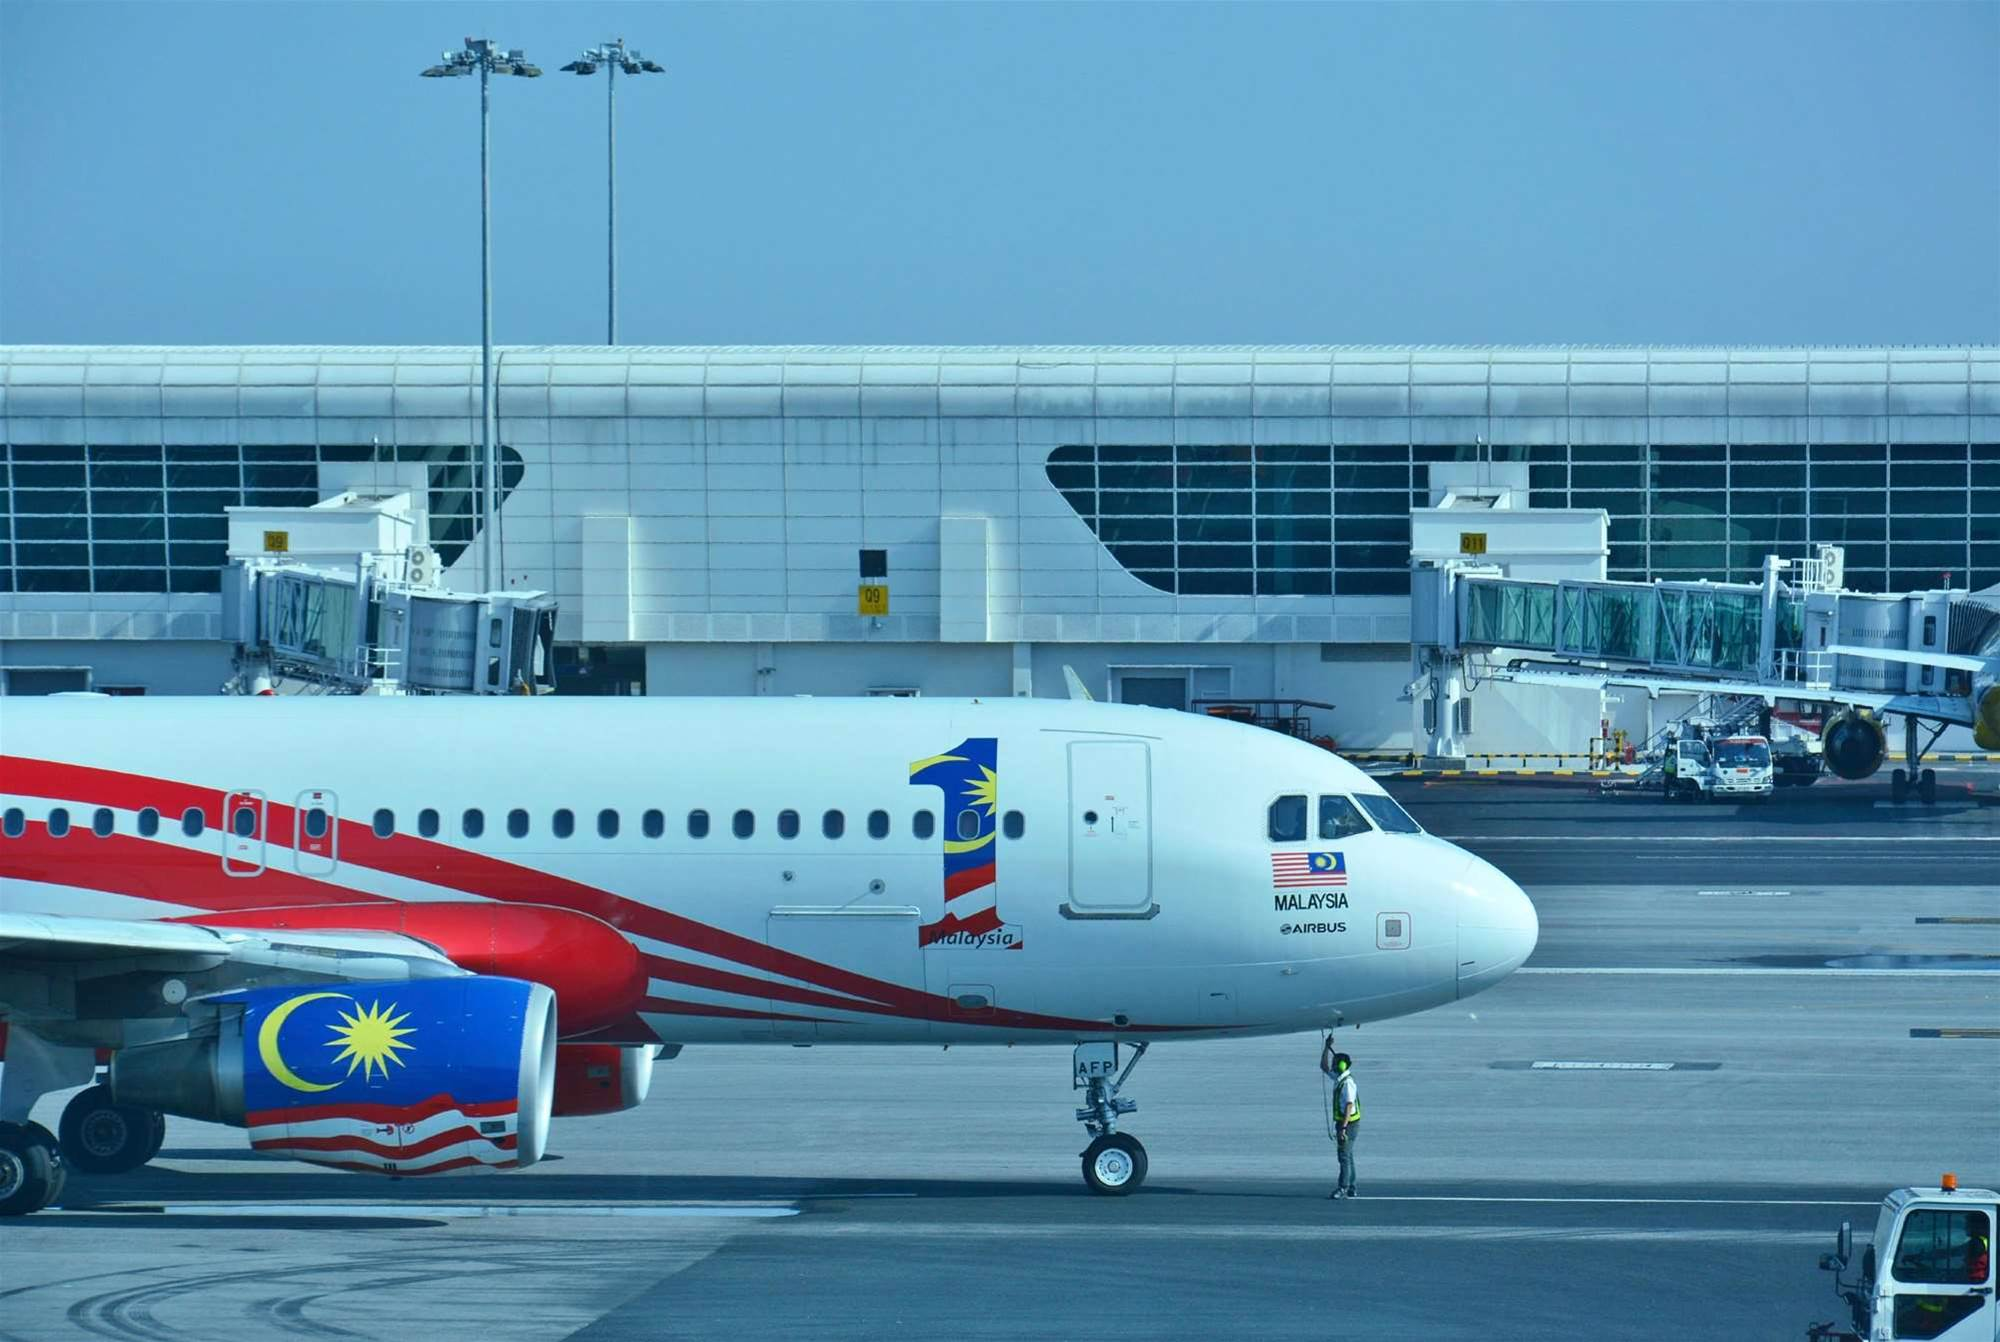 Malaysian immigration officials fired for sabotaging passport system